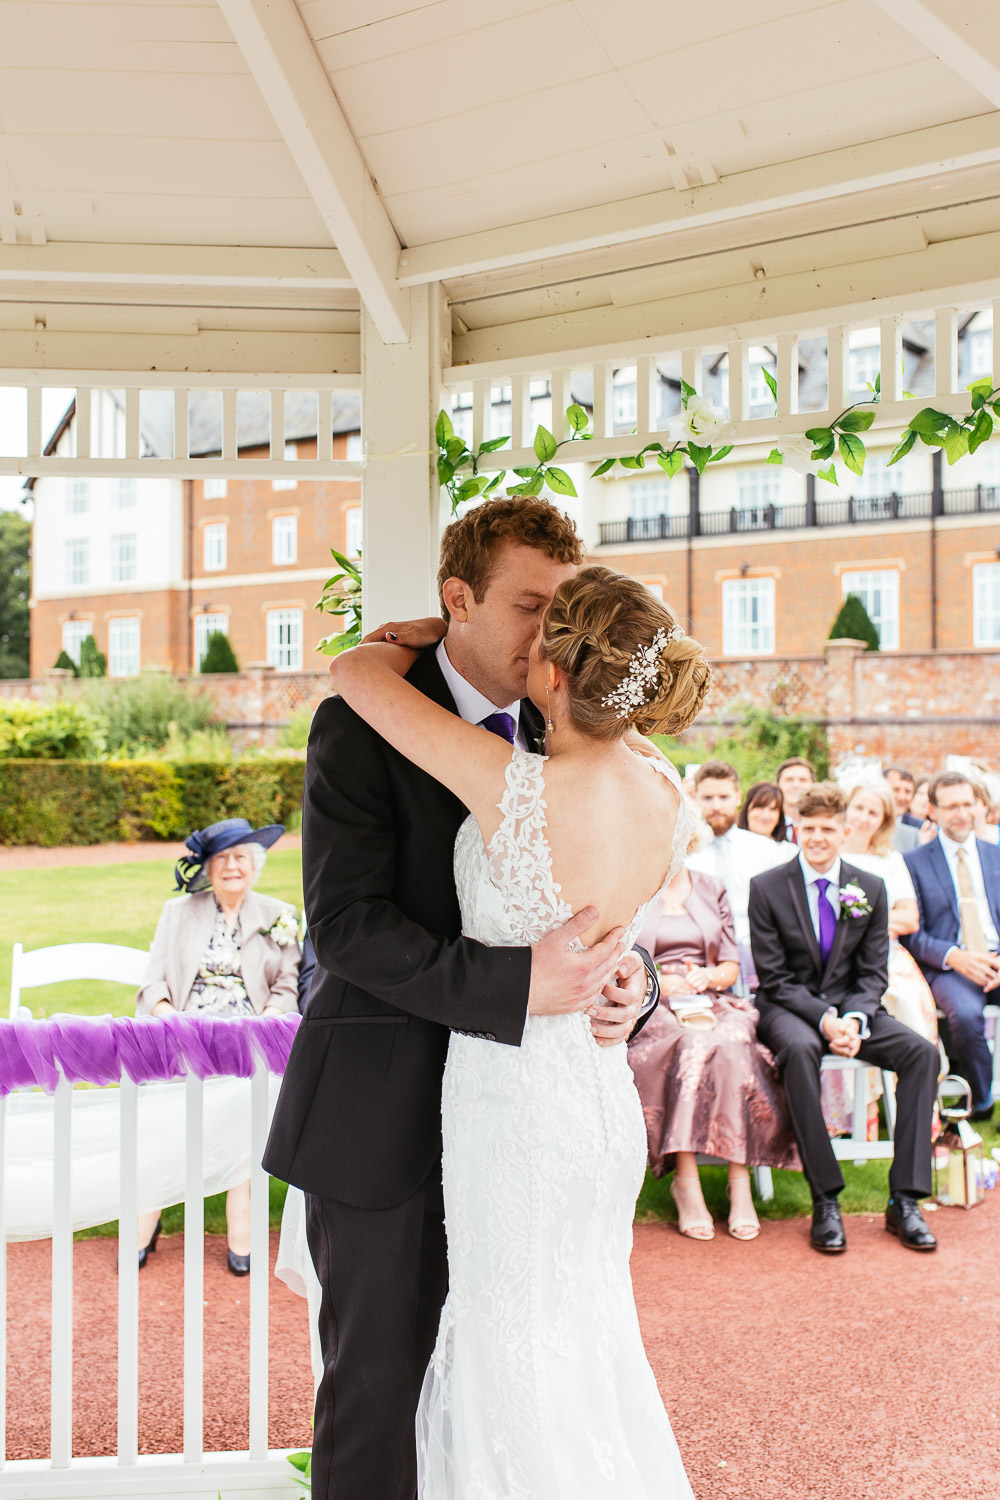 Siobhan-and-James-Wedding-Highlights-33.jpg